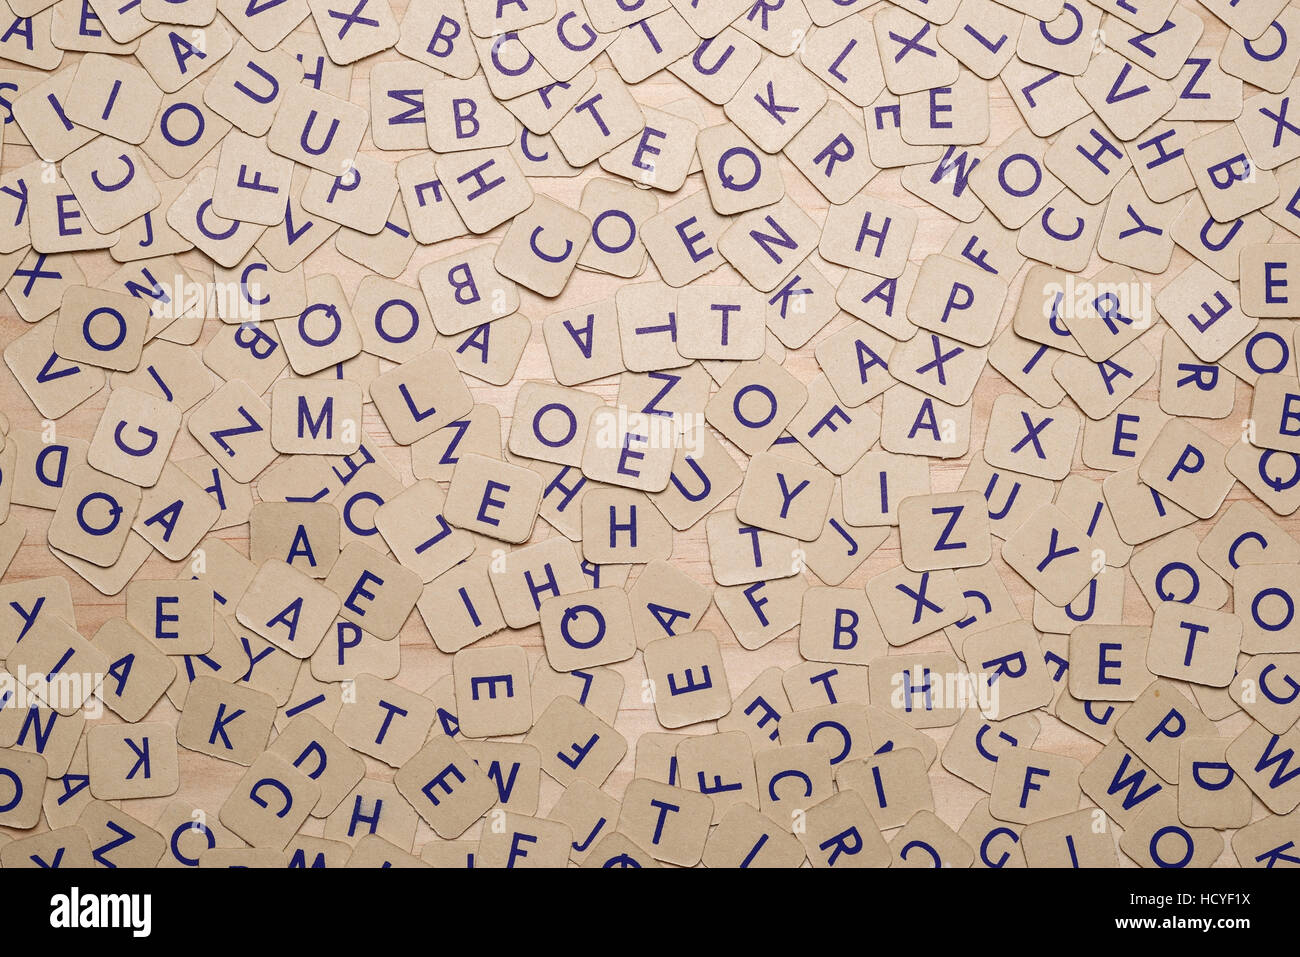 Abstract pattern of card alphabet letters - Stock Image